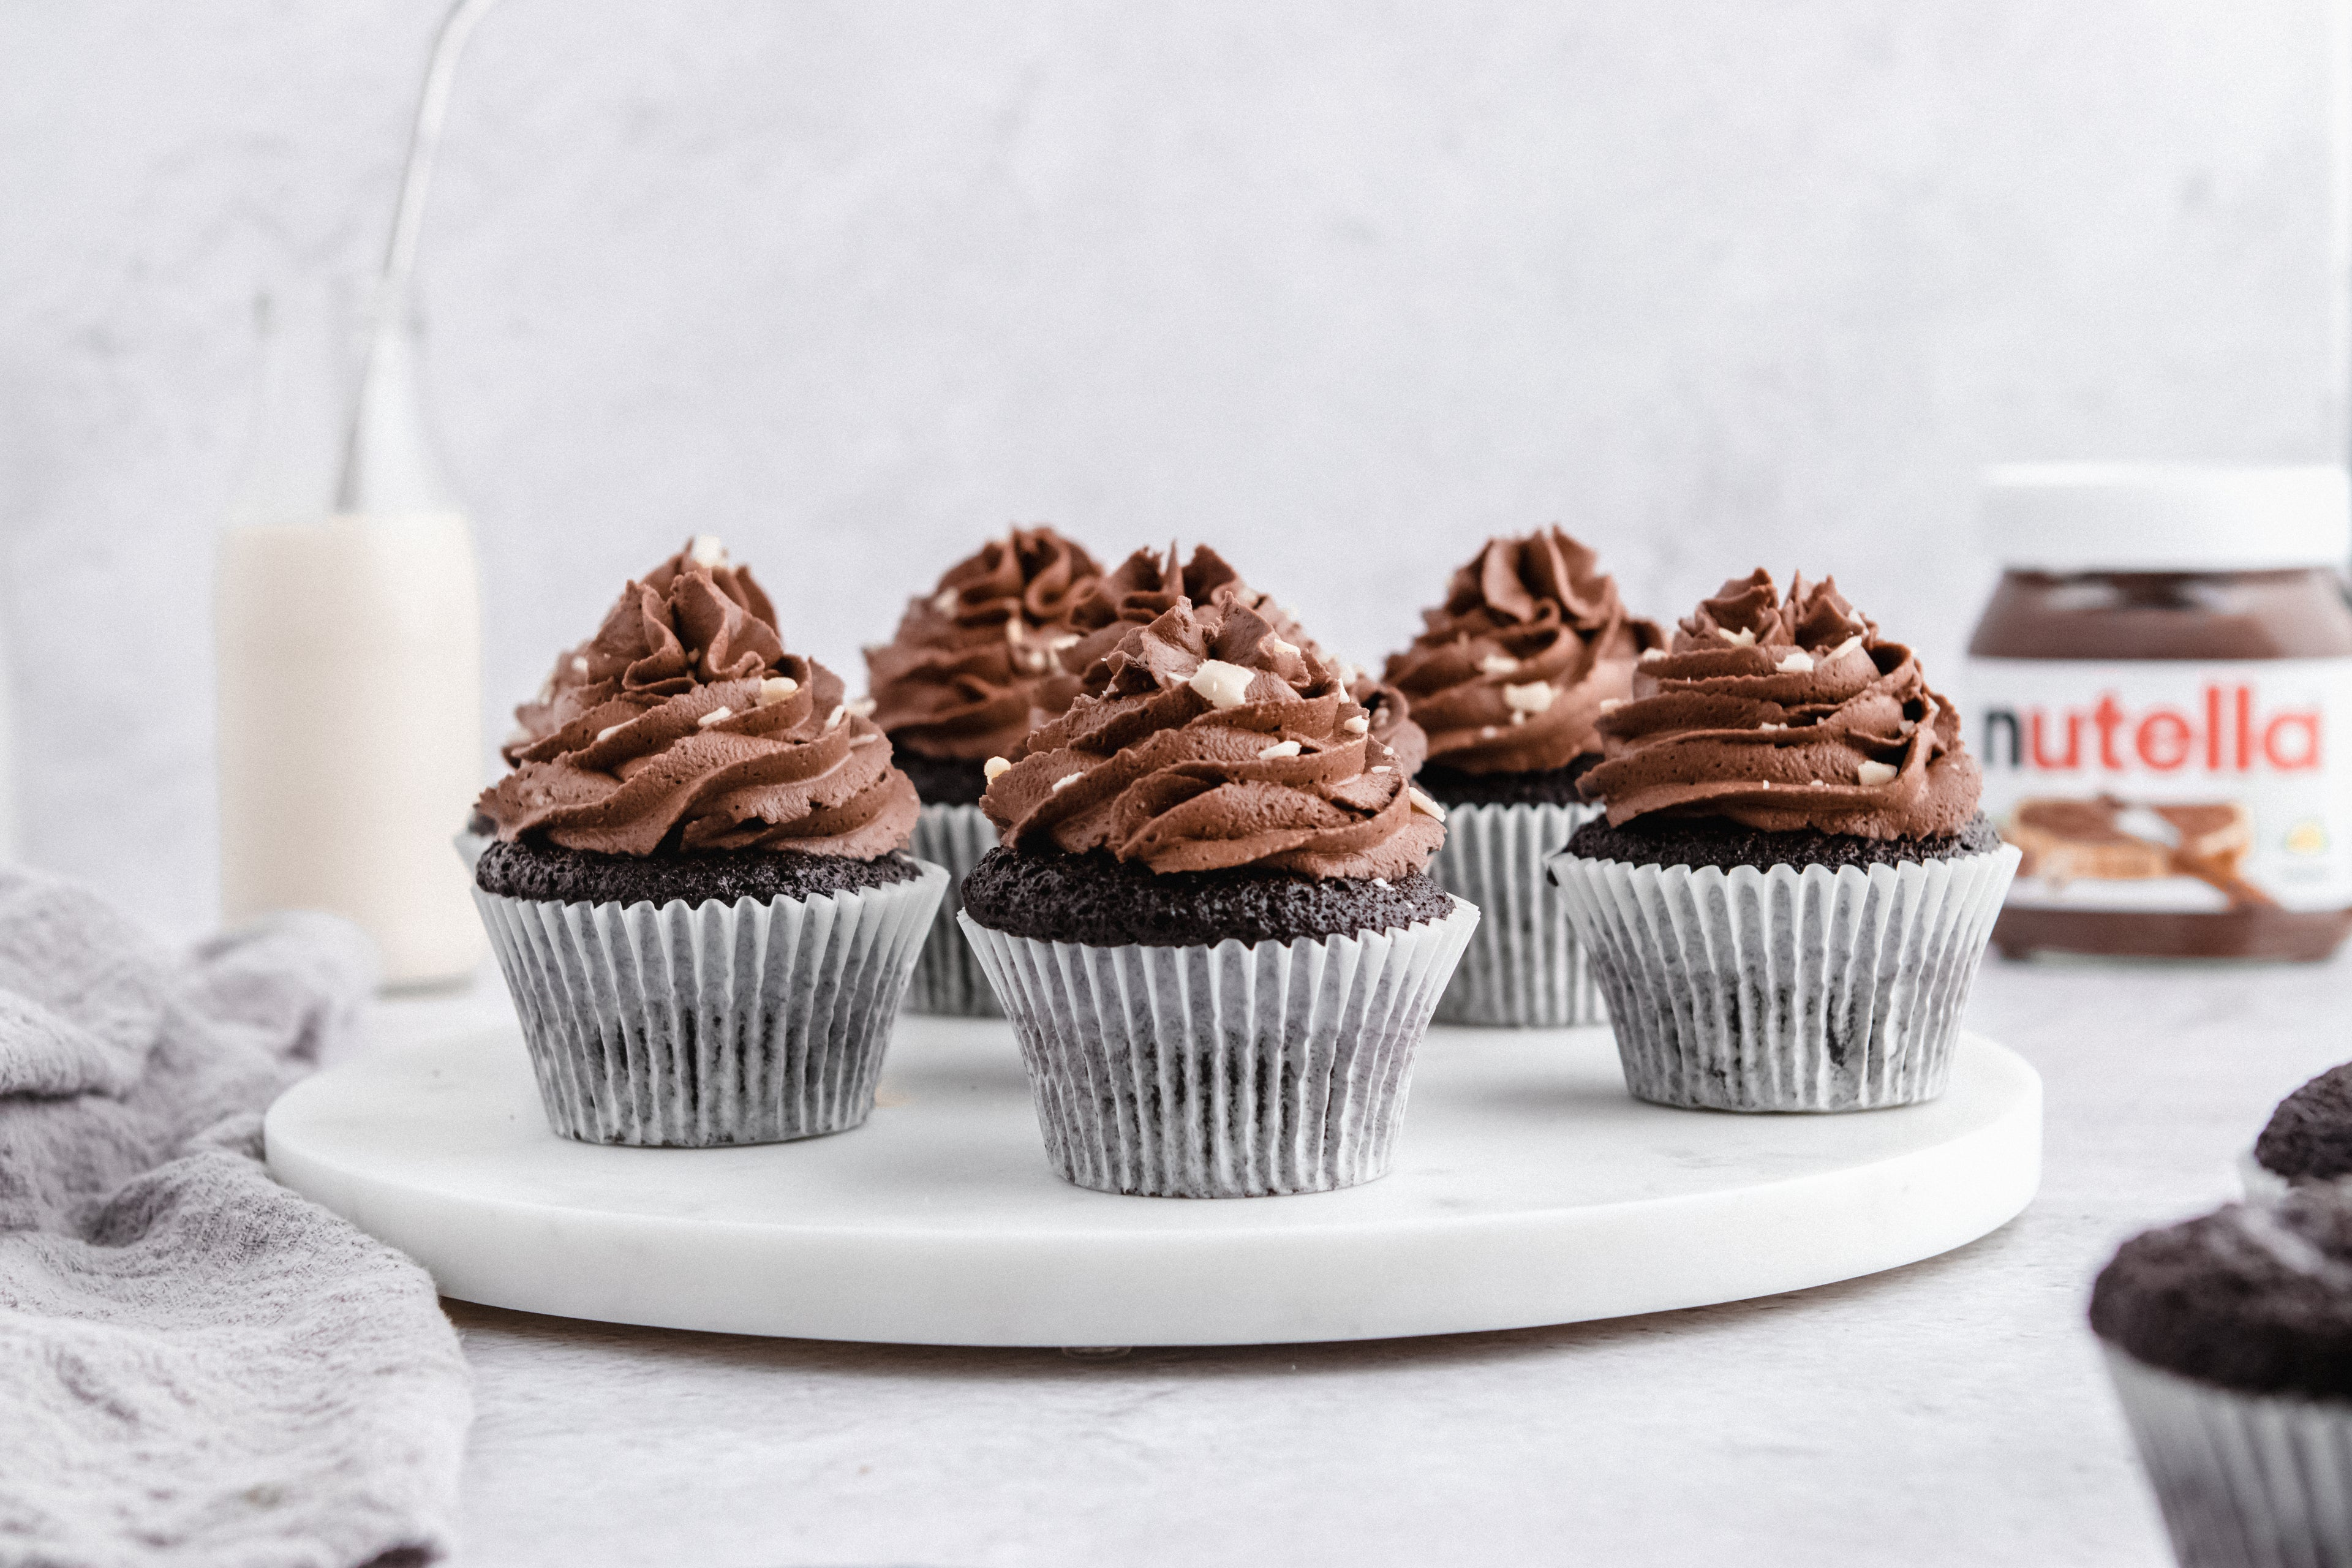 Nutella Cupcakes on a marble board, with a bottle of milk and jar of Nutella in the background